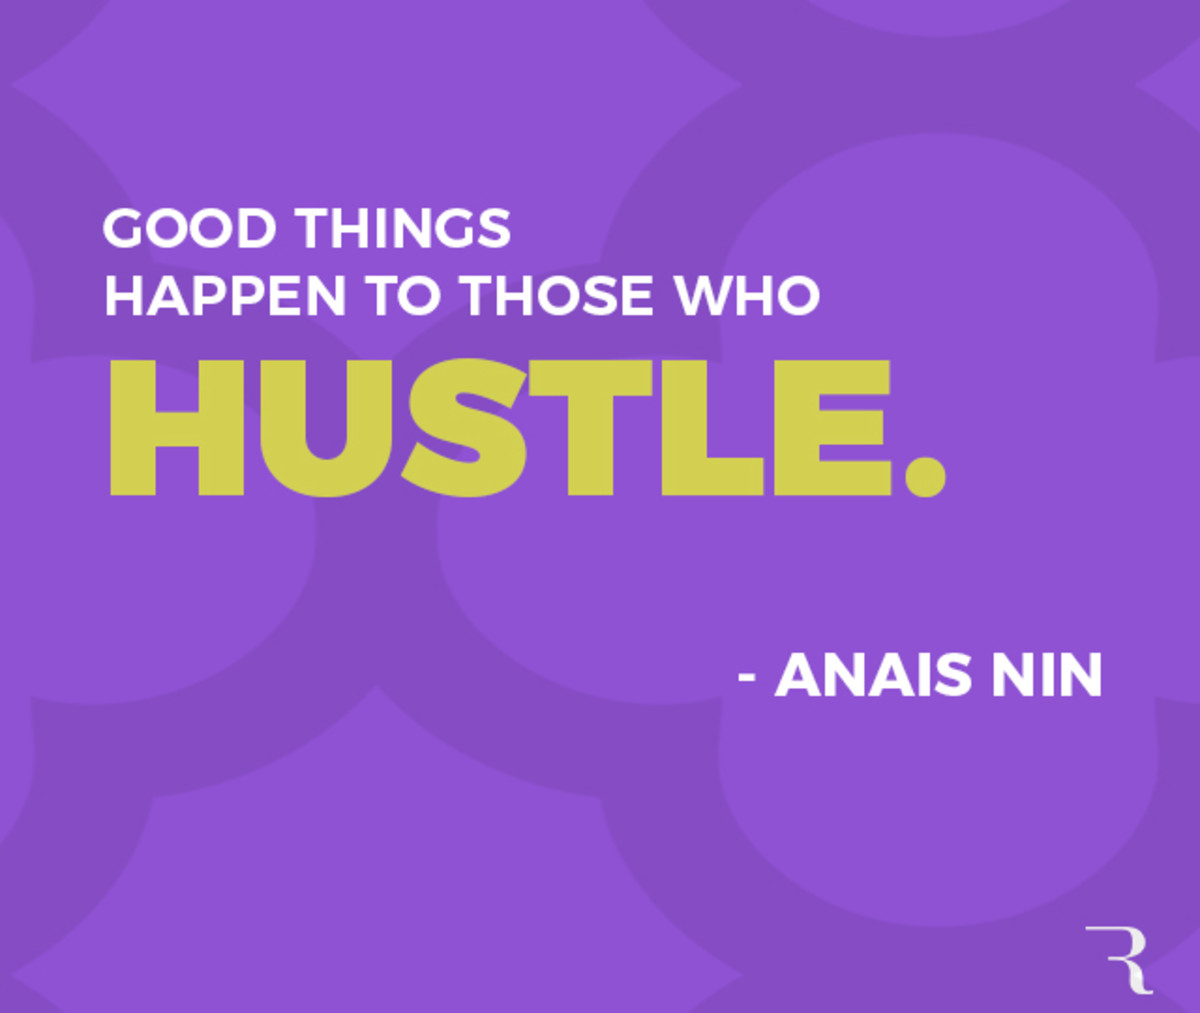 if-you-want-what-others-dont-have-do-the-opposite-hustle-while-others-hope